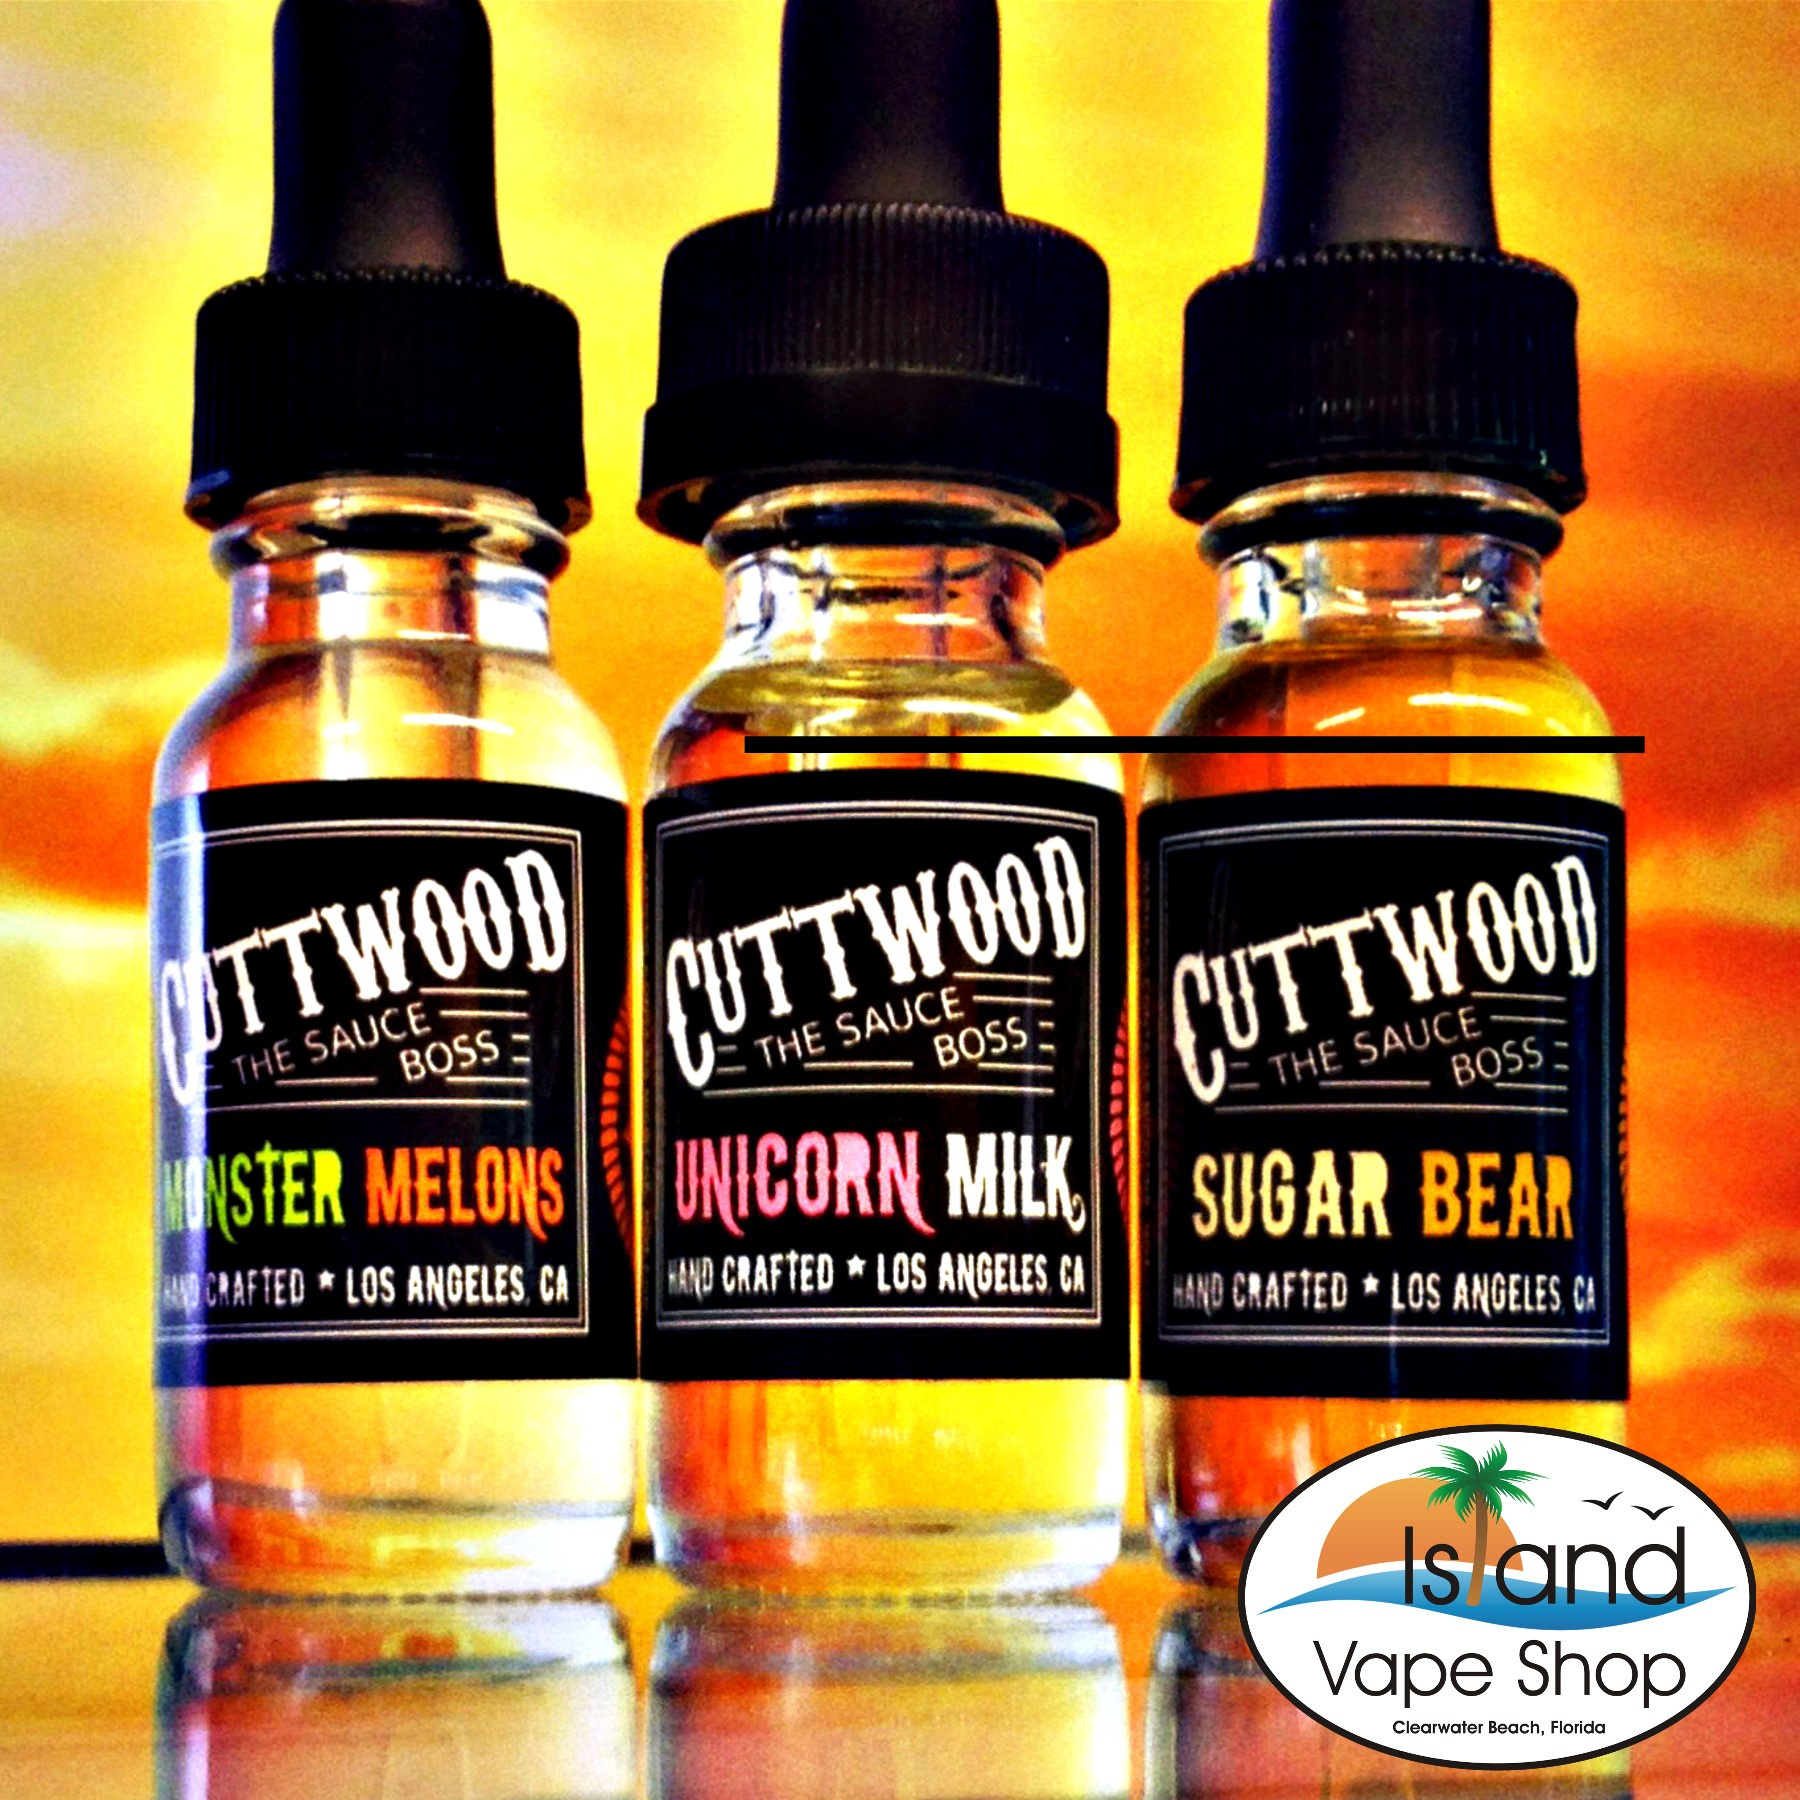 island_vape_shop_clearwater_beach_ecig_eliquid_the_sauce_boss_reserve_cuttwood_unicorn_milk_sugar_bear_monster_melons.jpg